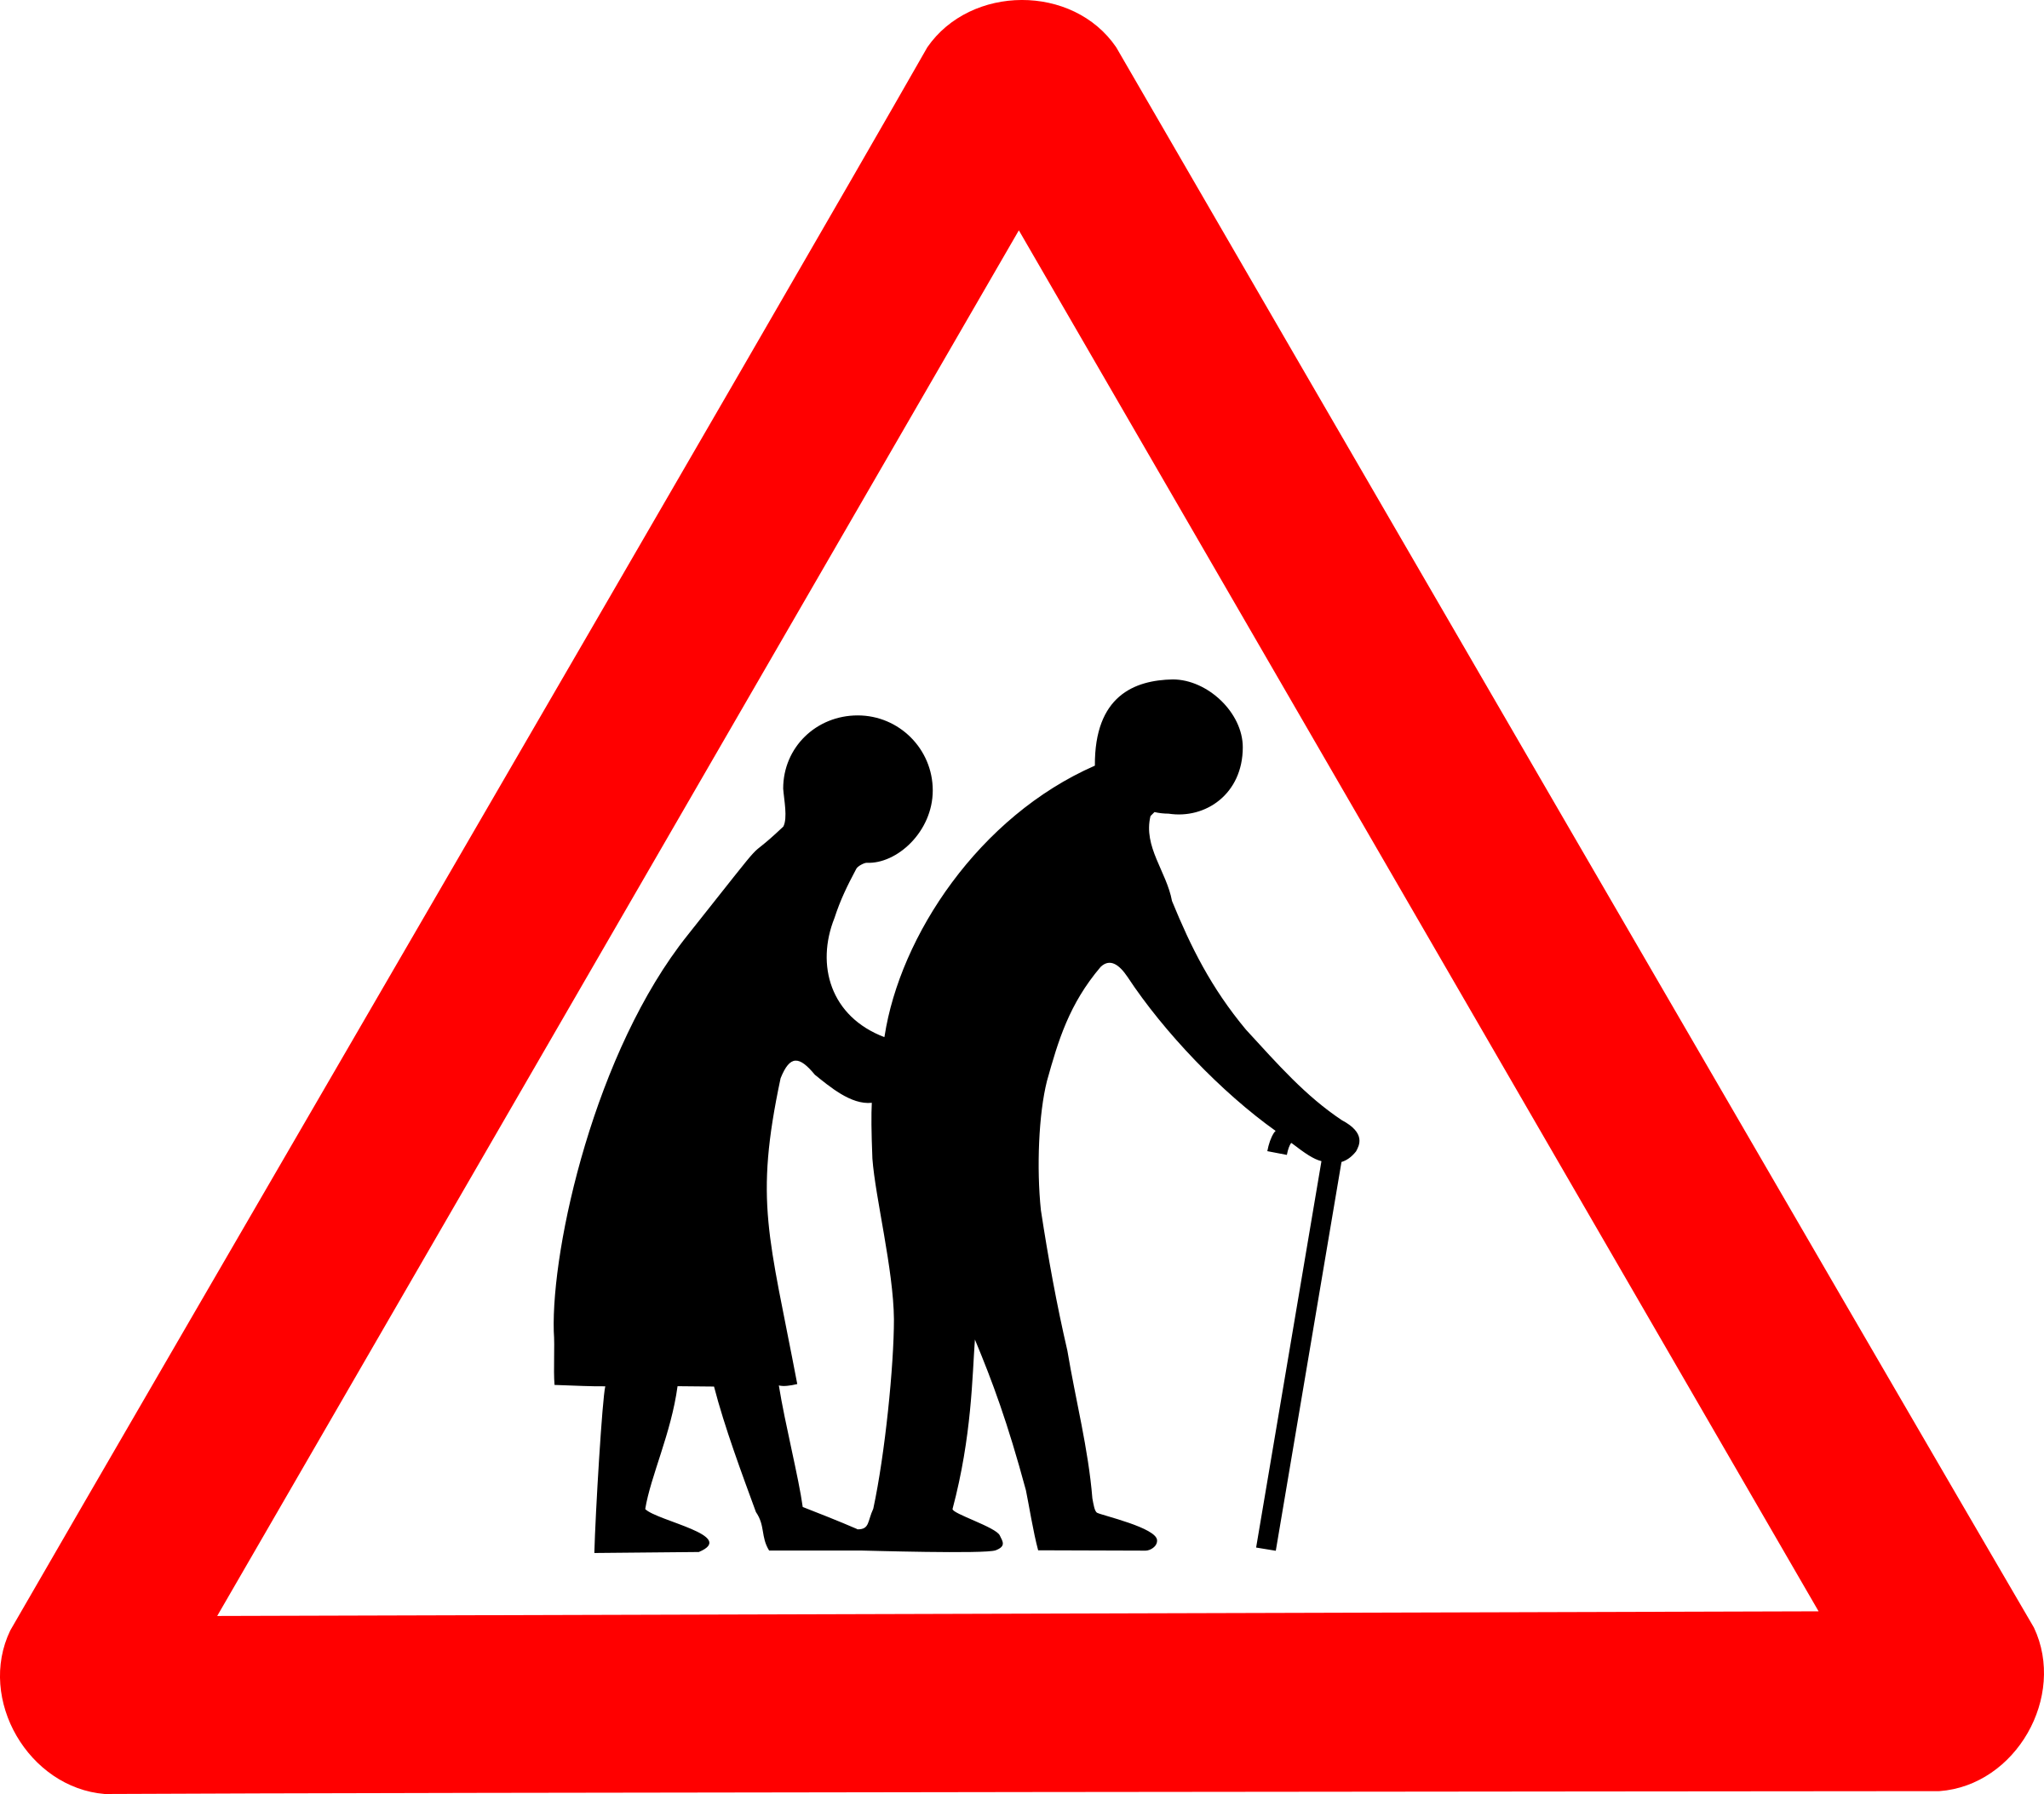 Cross the road clipart png free download Elderly crossing road sign clipart png free download